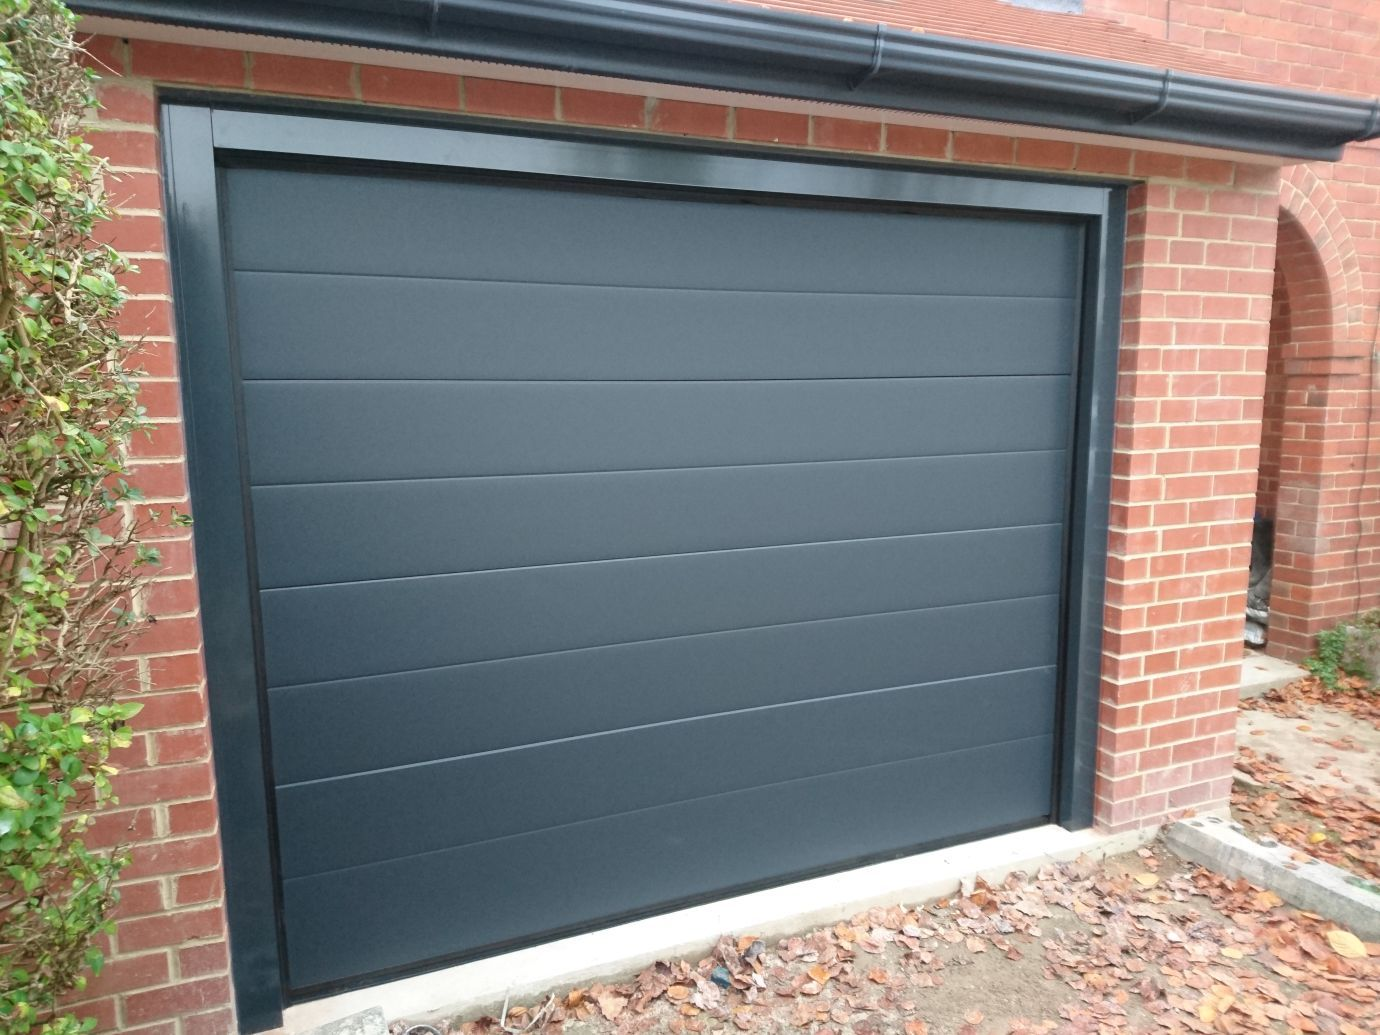 Automatic Sectional Garage Door Finished In Anthracite With The New Executive Frame Making It A Smart Finish Sectional Garage Doors Garage Doors Doors